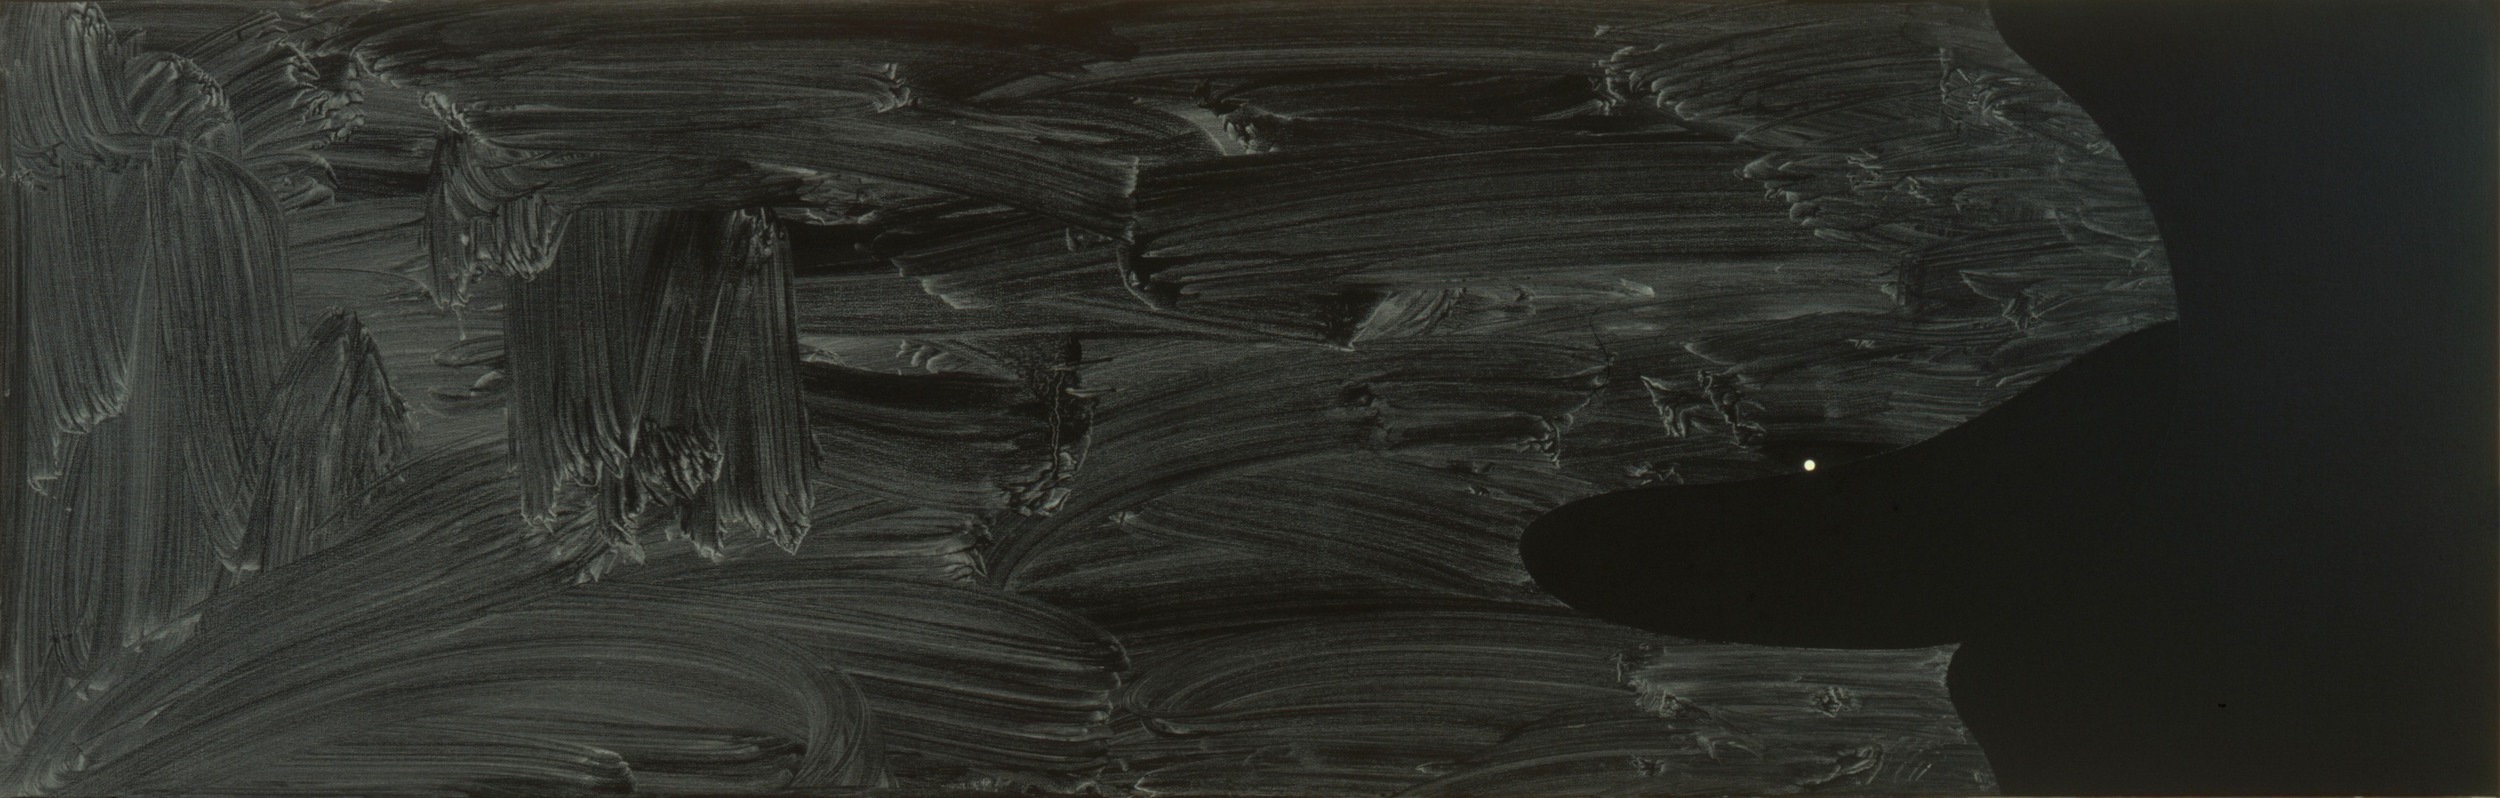 Robert Moskowitz,Untitled, 1997, Oil on canvas, 25 x 78 inches  2/3  Lawrence Markey Inc.